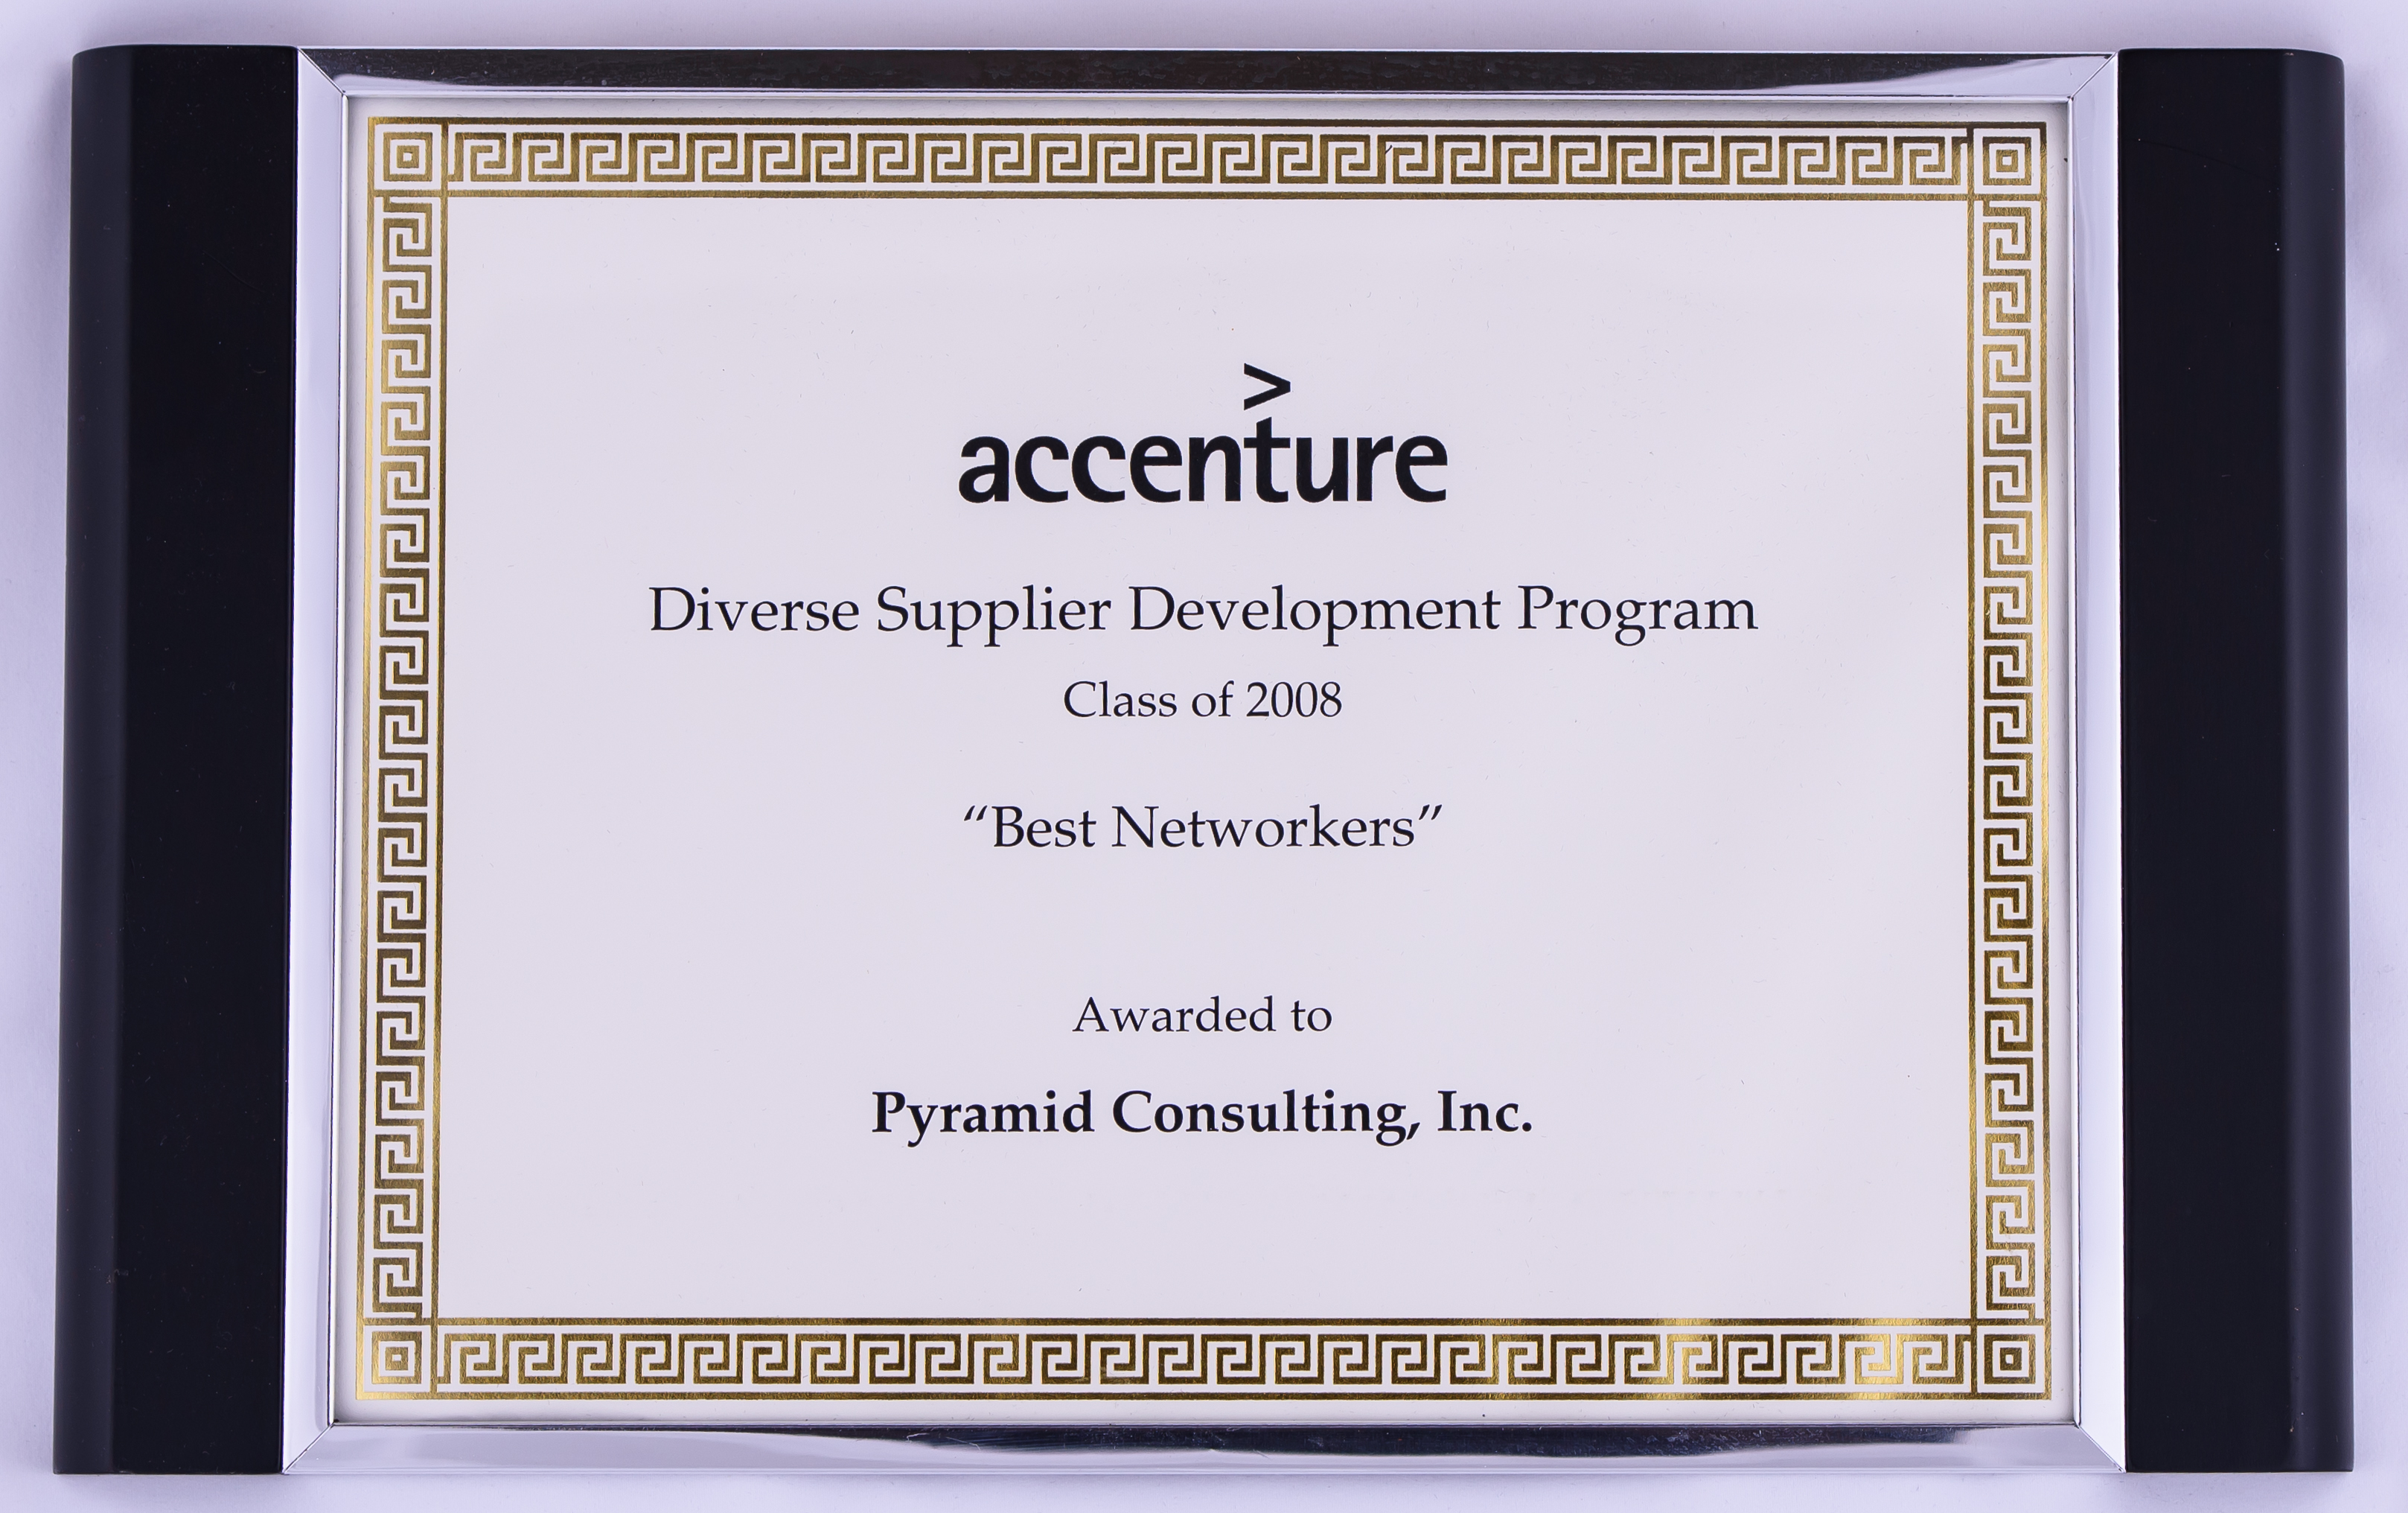 2008 Diverse Supplier Development Program Best Networkers